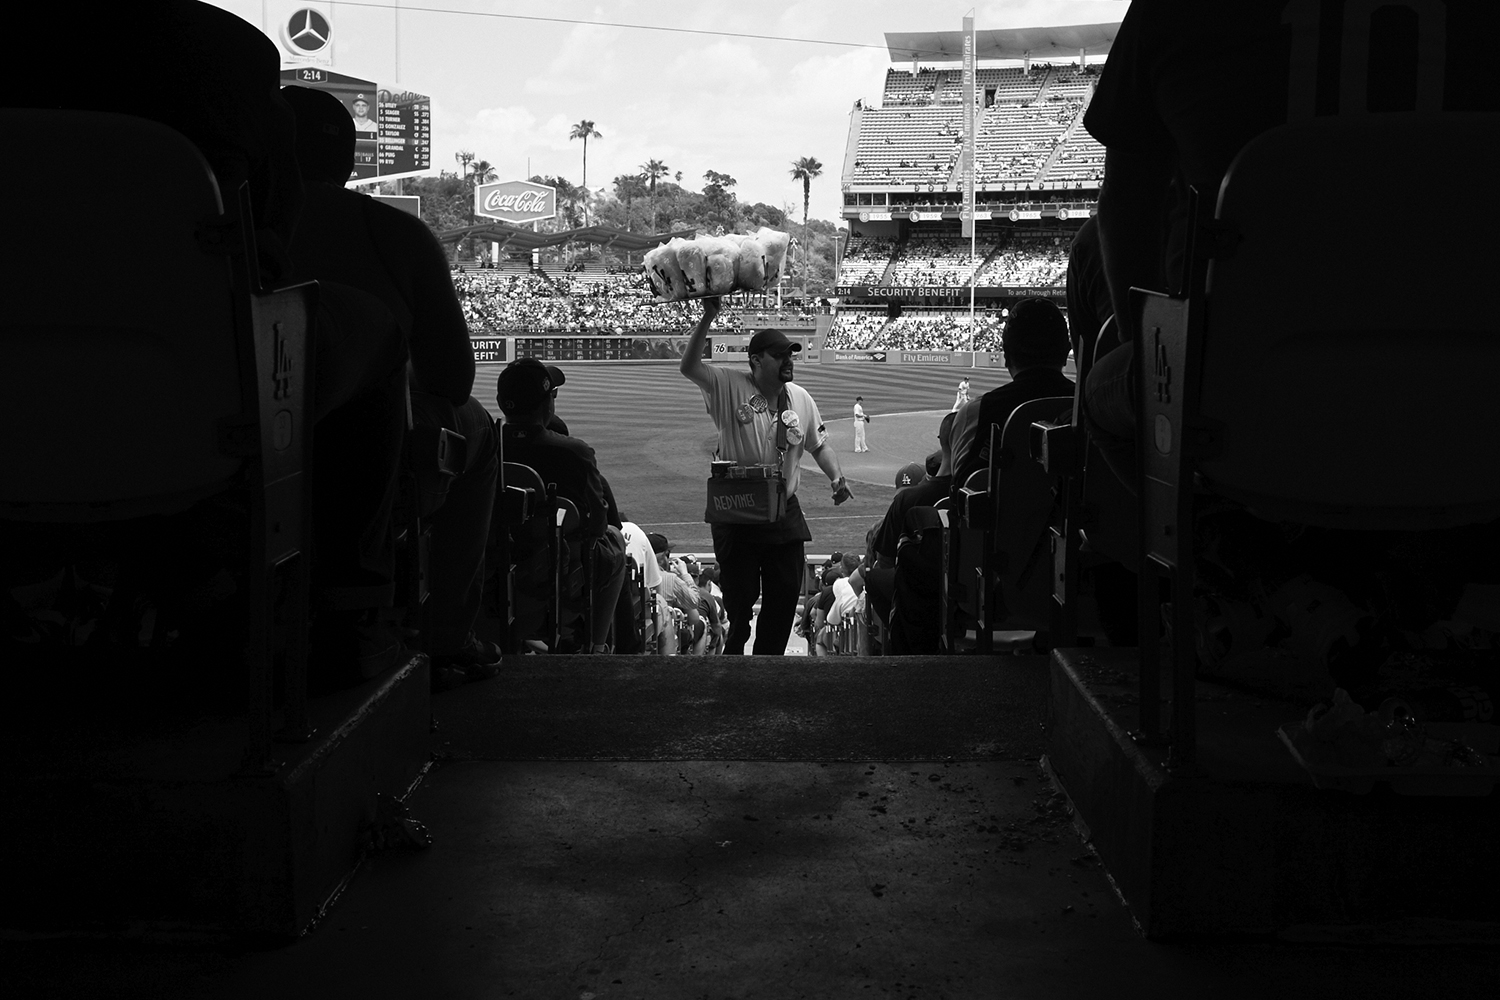 kyle_ellis_photography_dodgers_baseball_1104.jpg